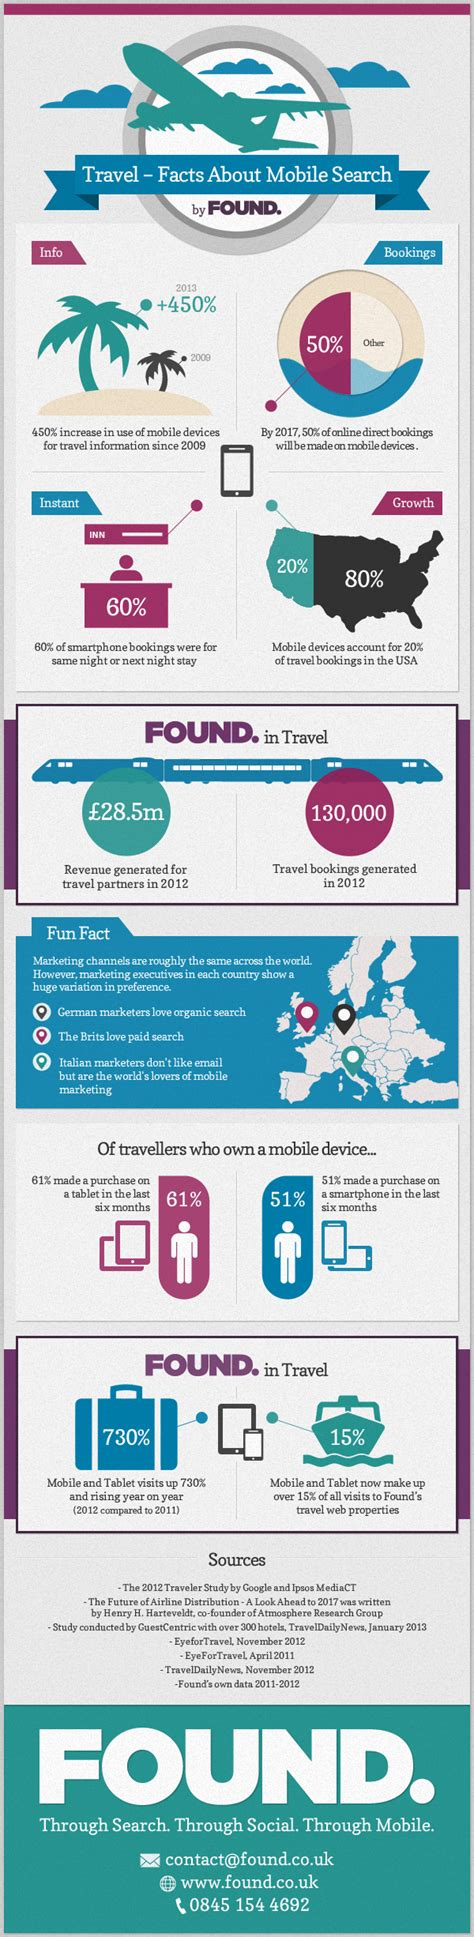 Mobile Lookup Uk Travel Facts About Mobile Search Infographic